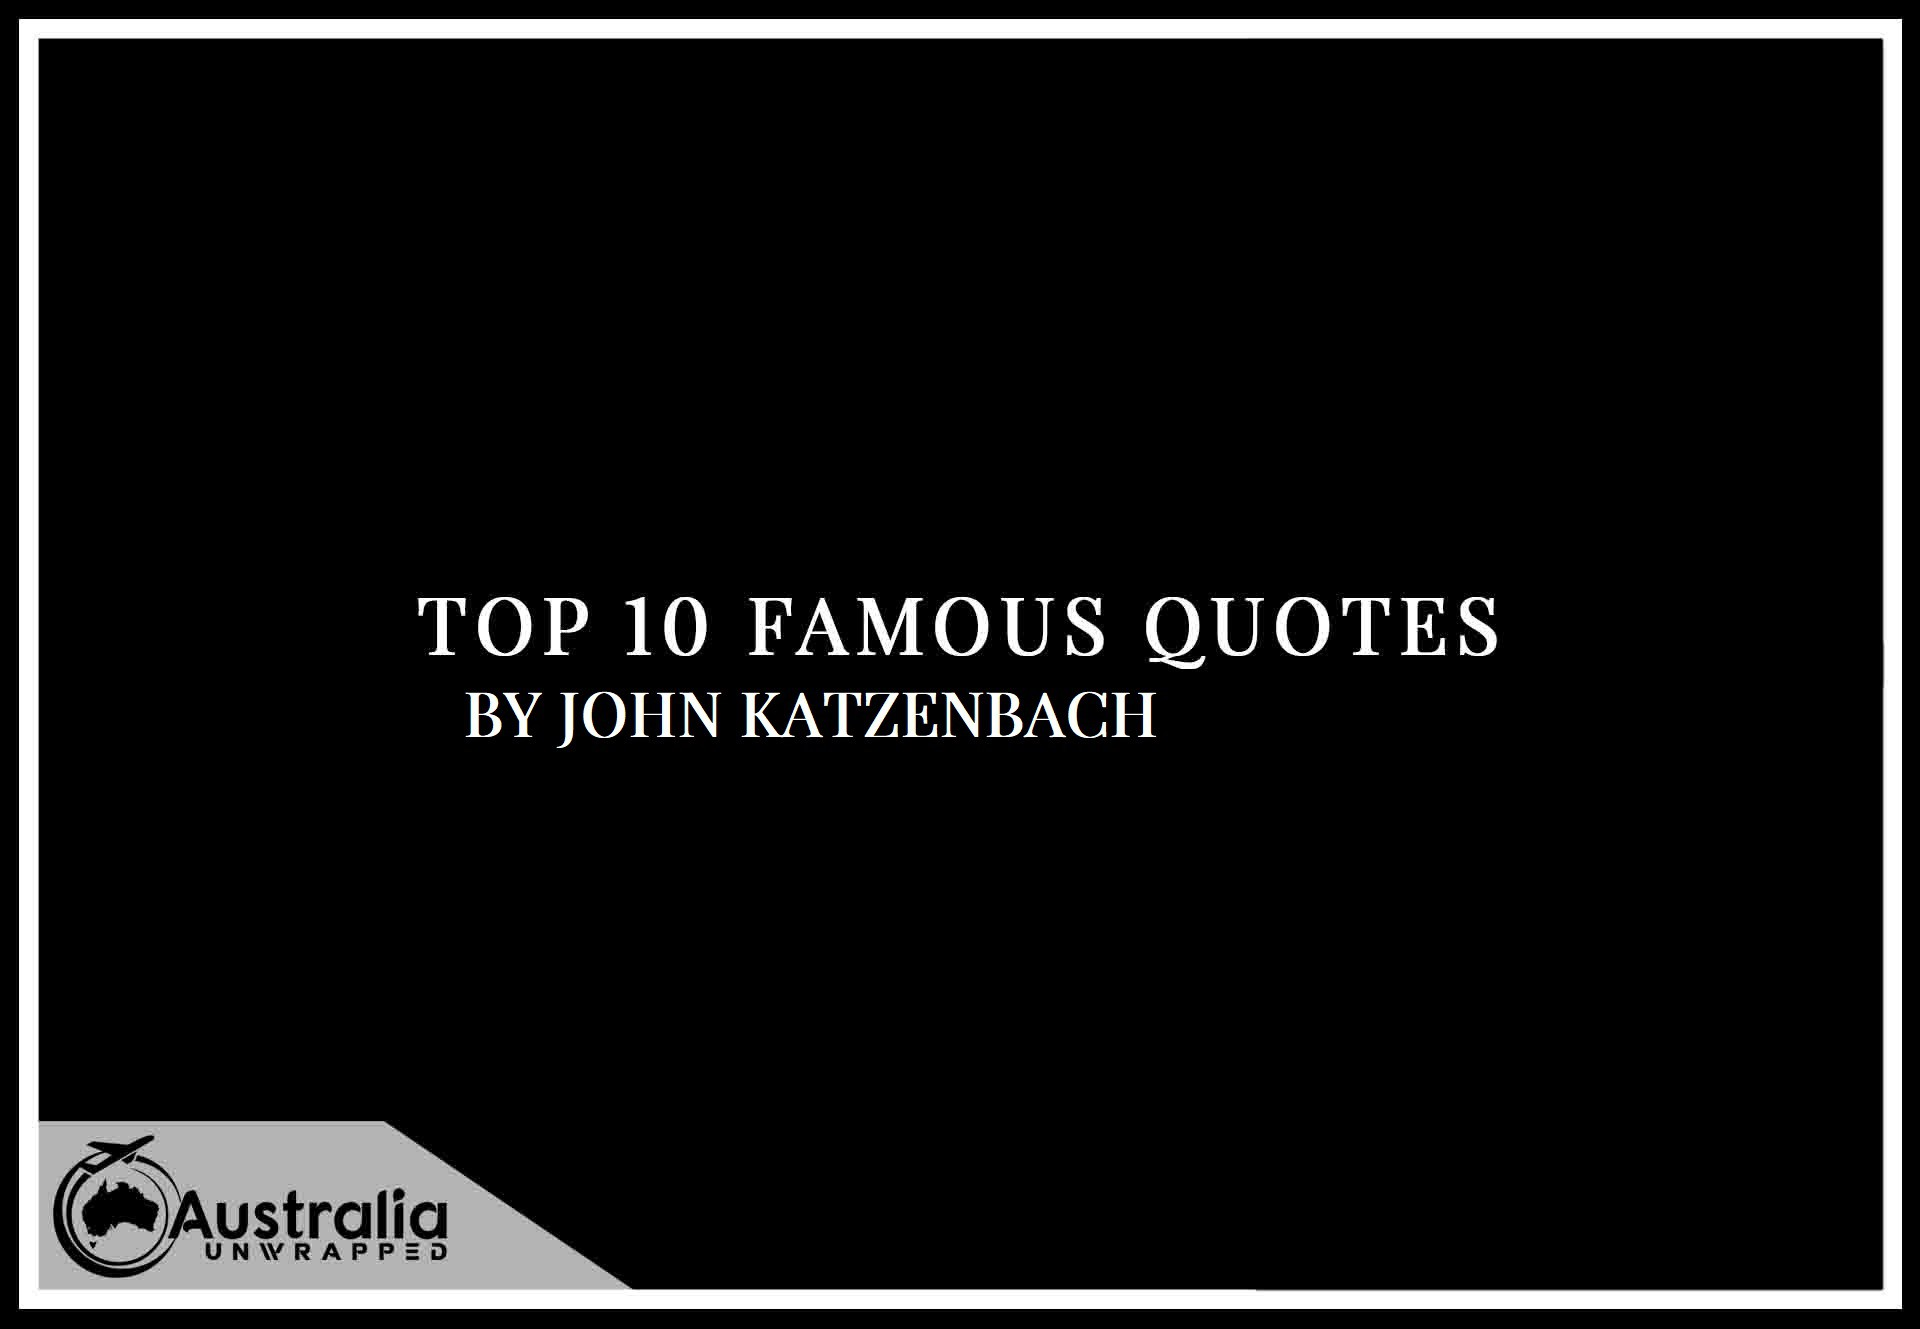 Top 10 Famous Quotes by Author John Katzenbach